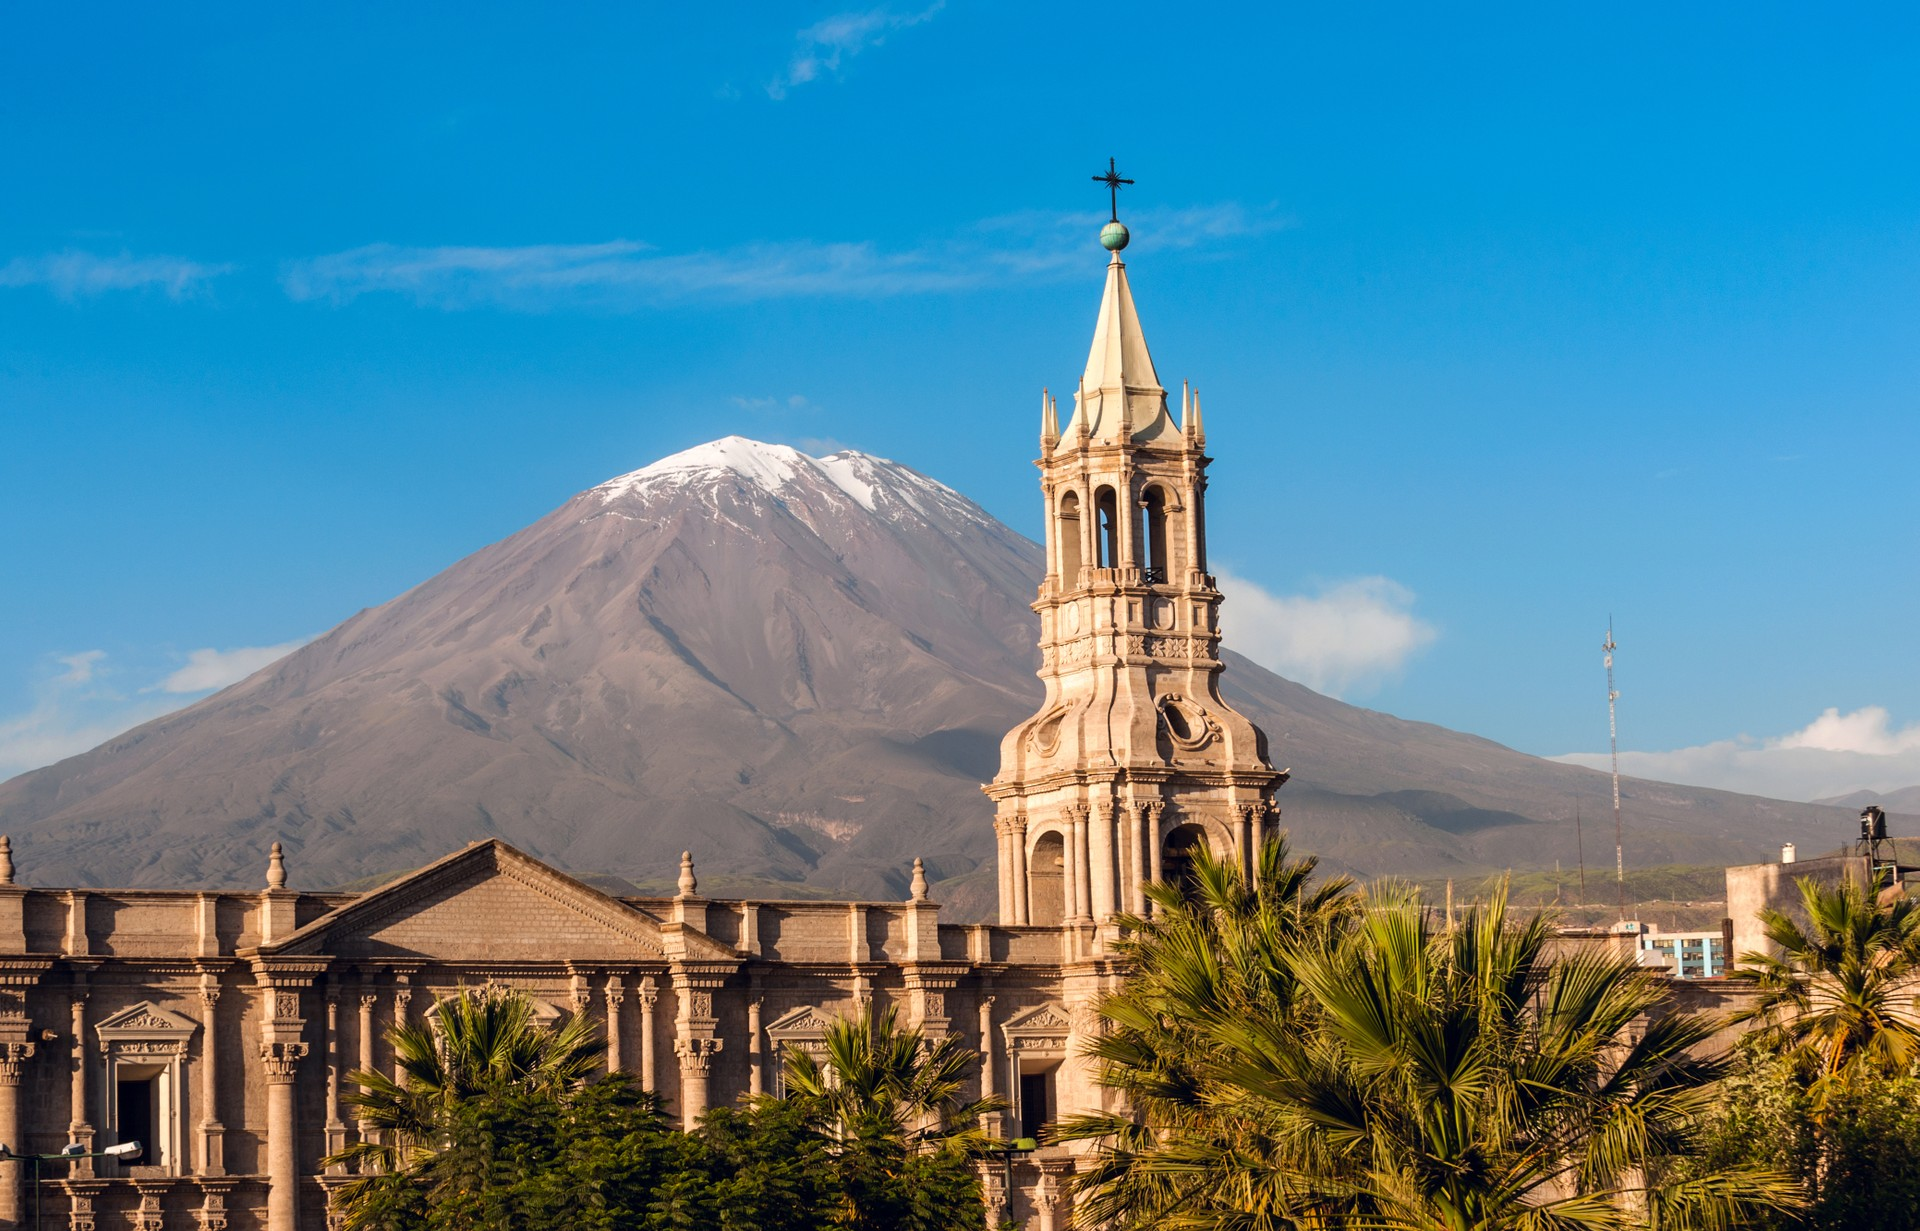 Arequipa with volcano in background